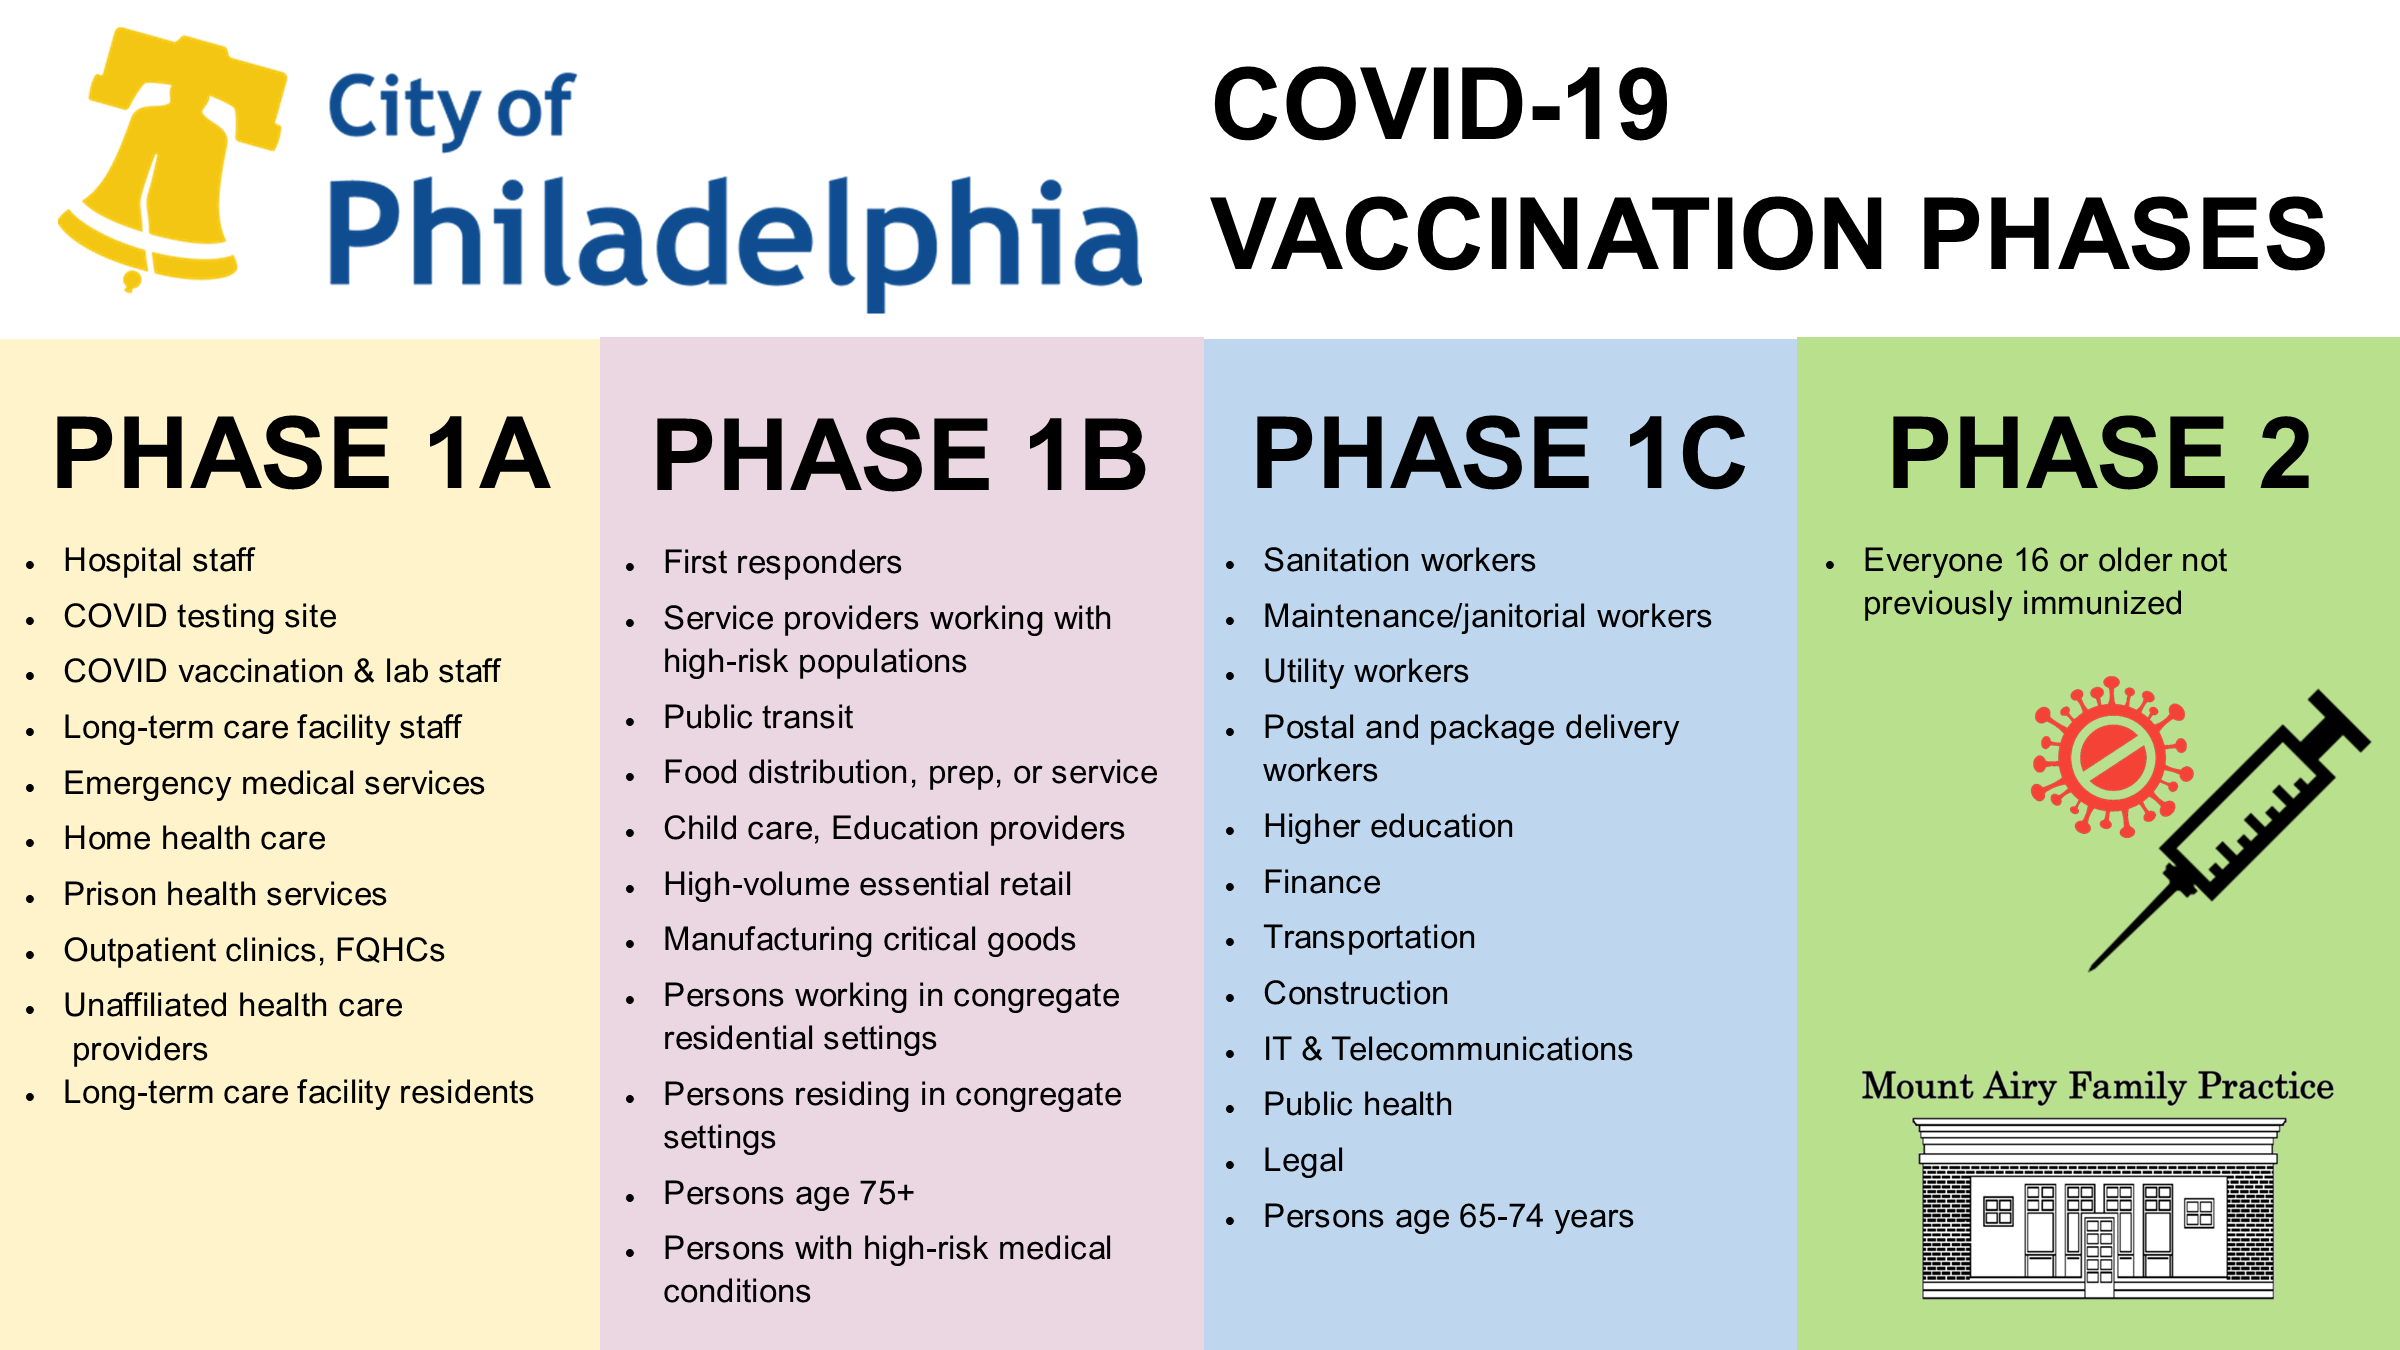 2021-01-21 PHL Vaccination Phases MAFP Image